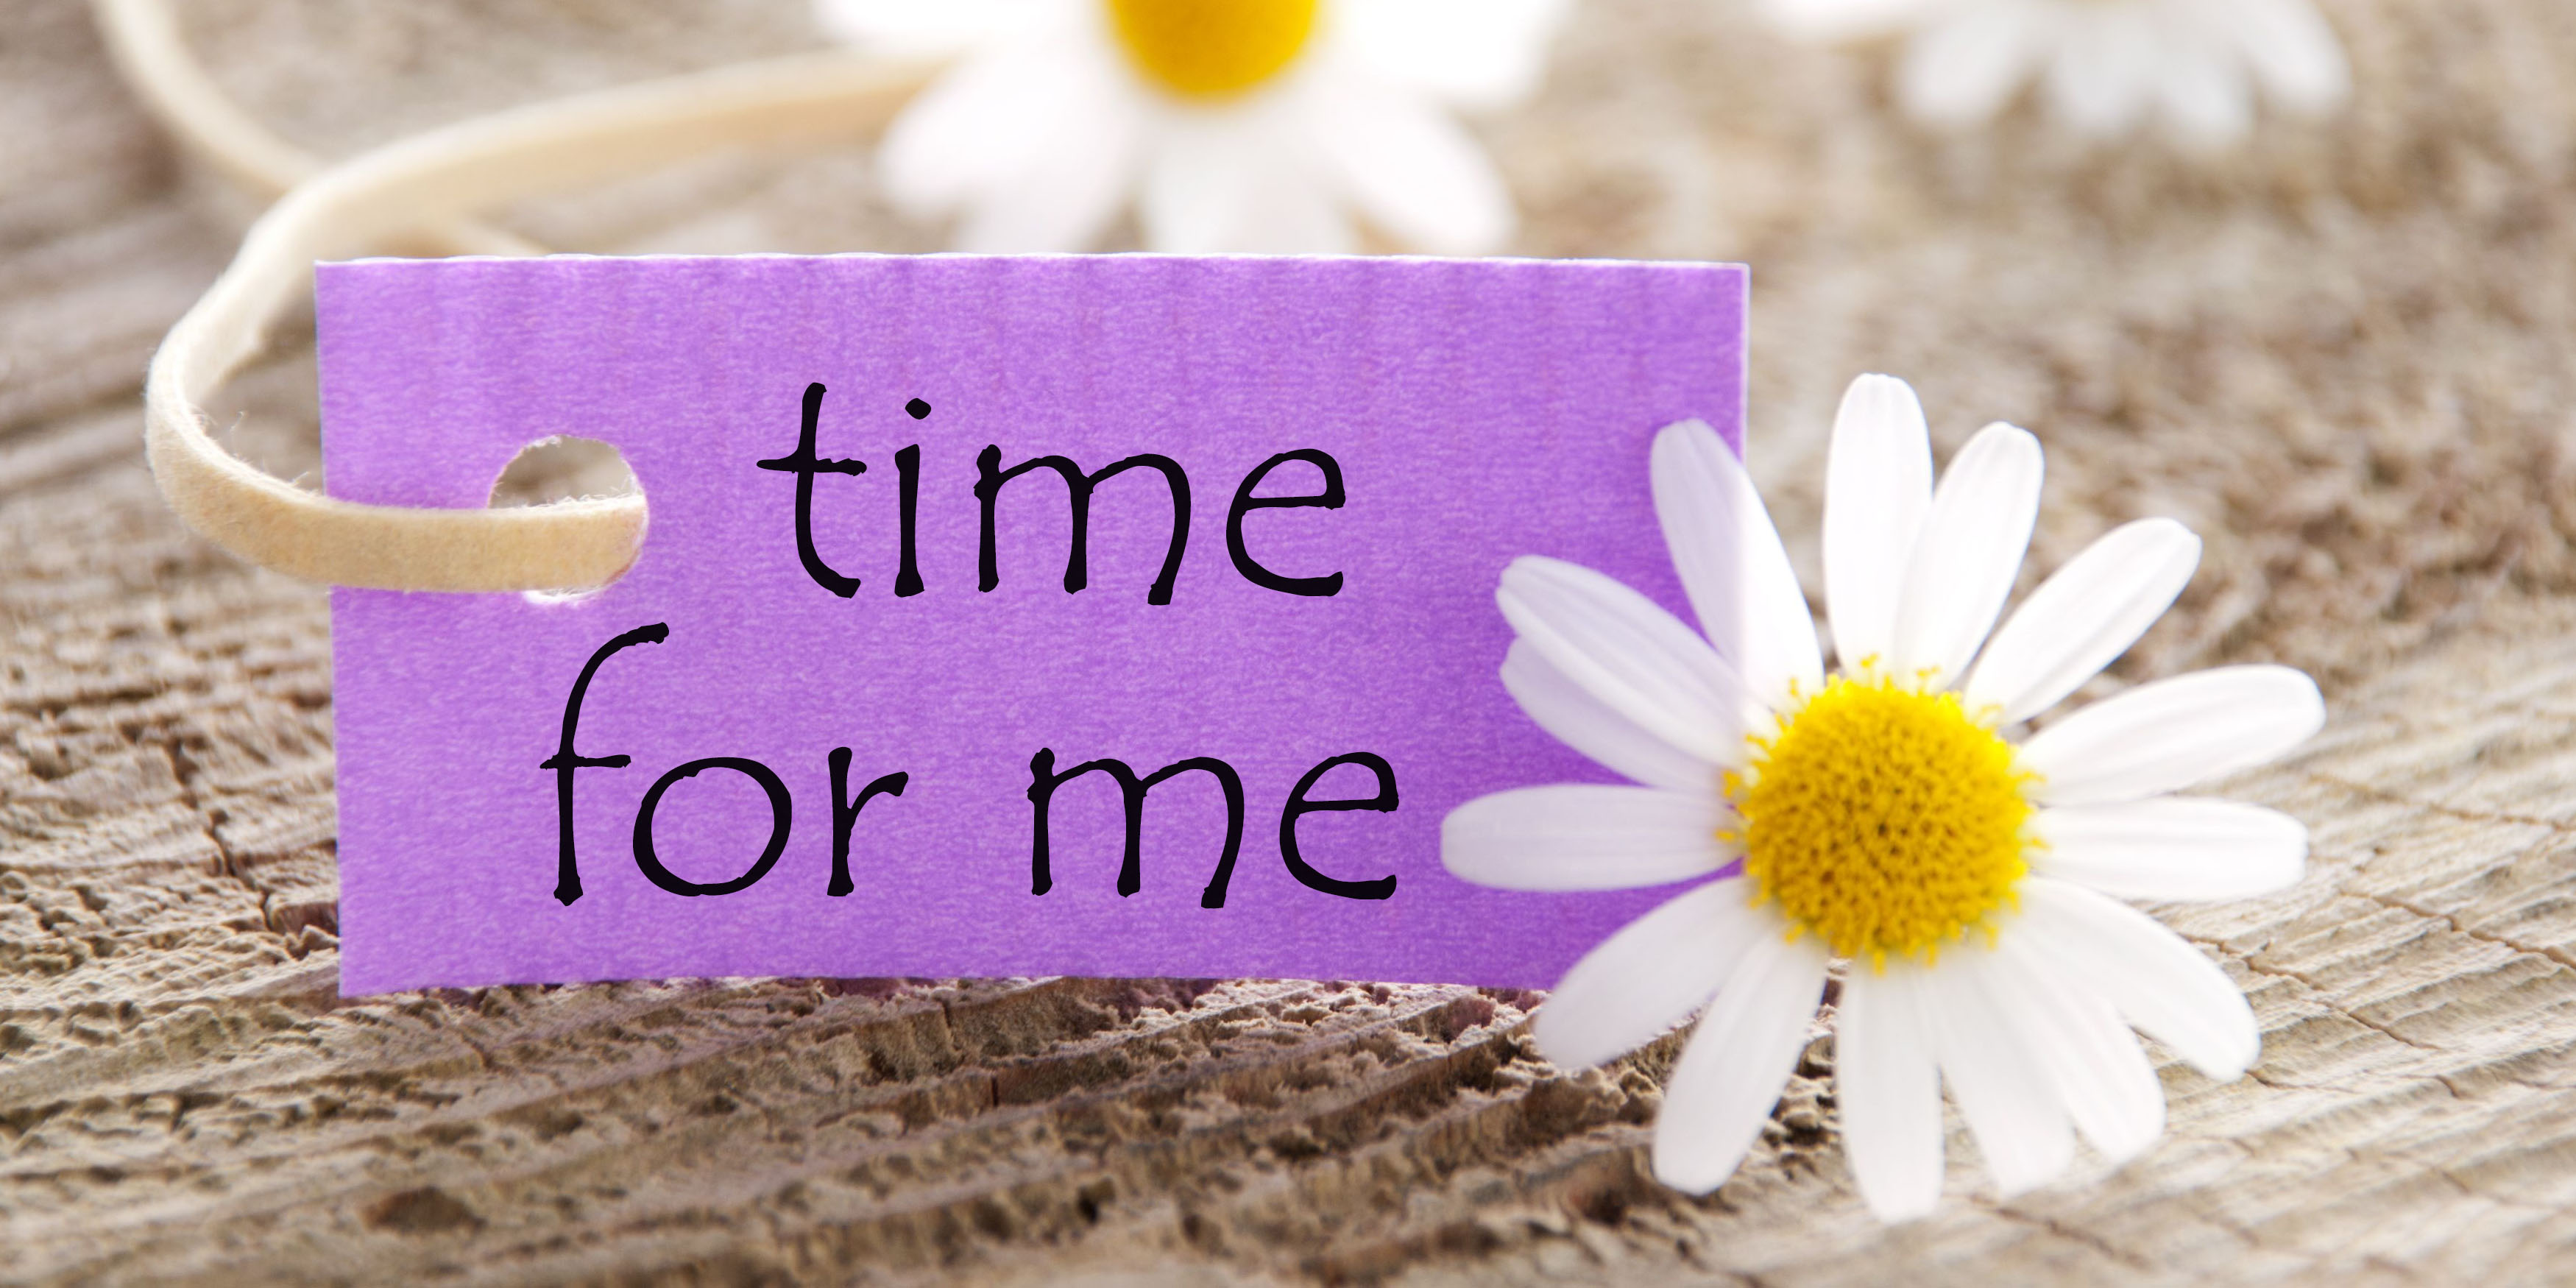 time for me with daisies